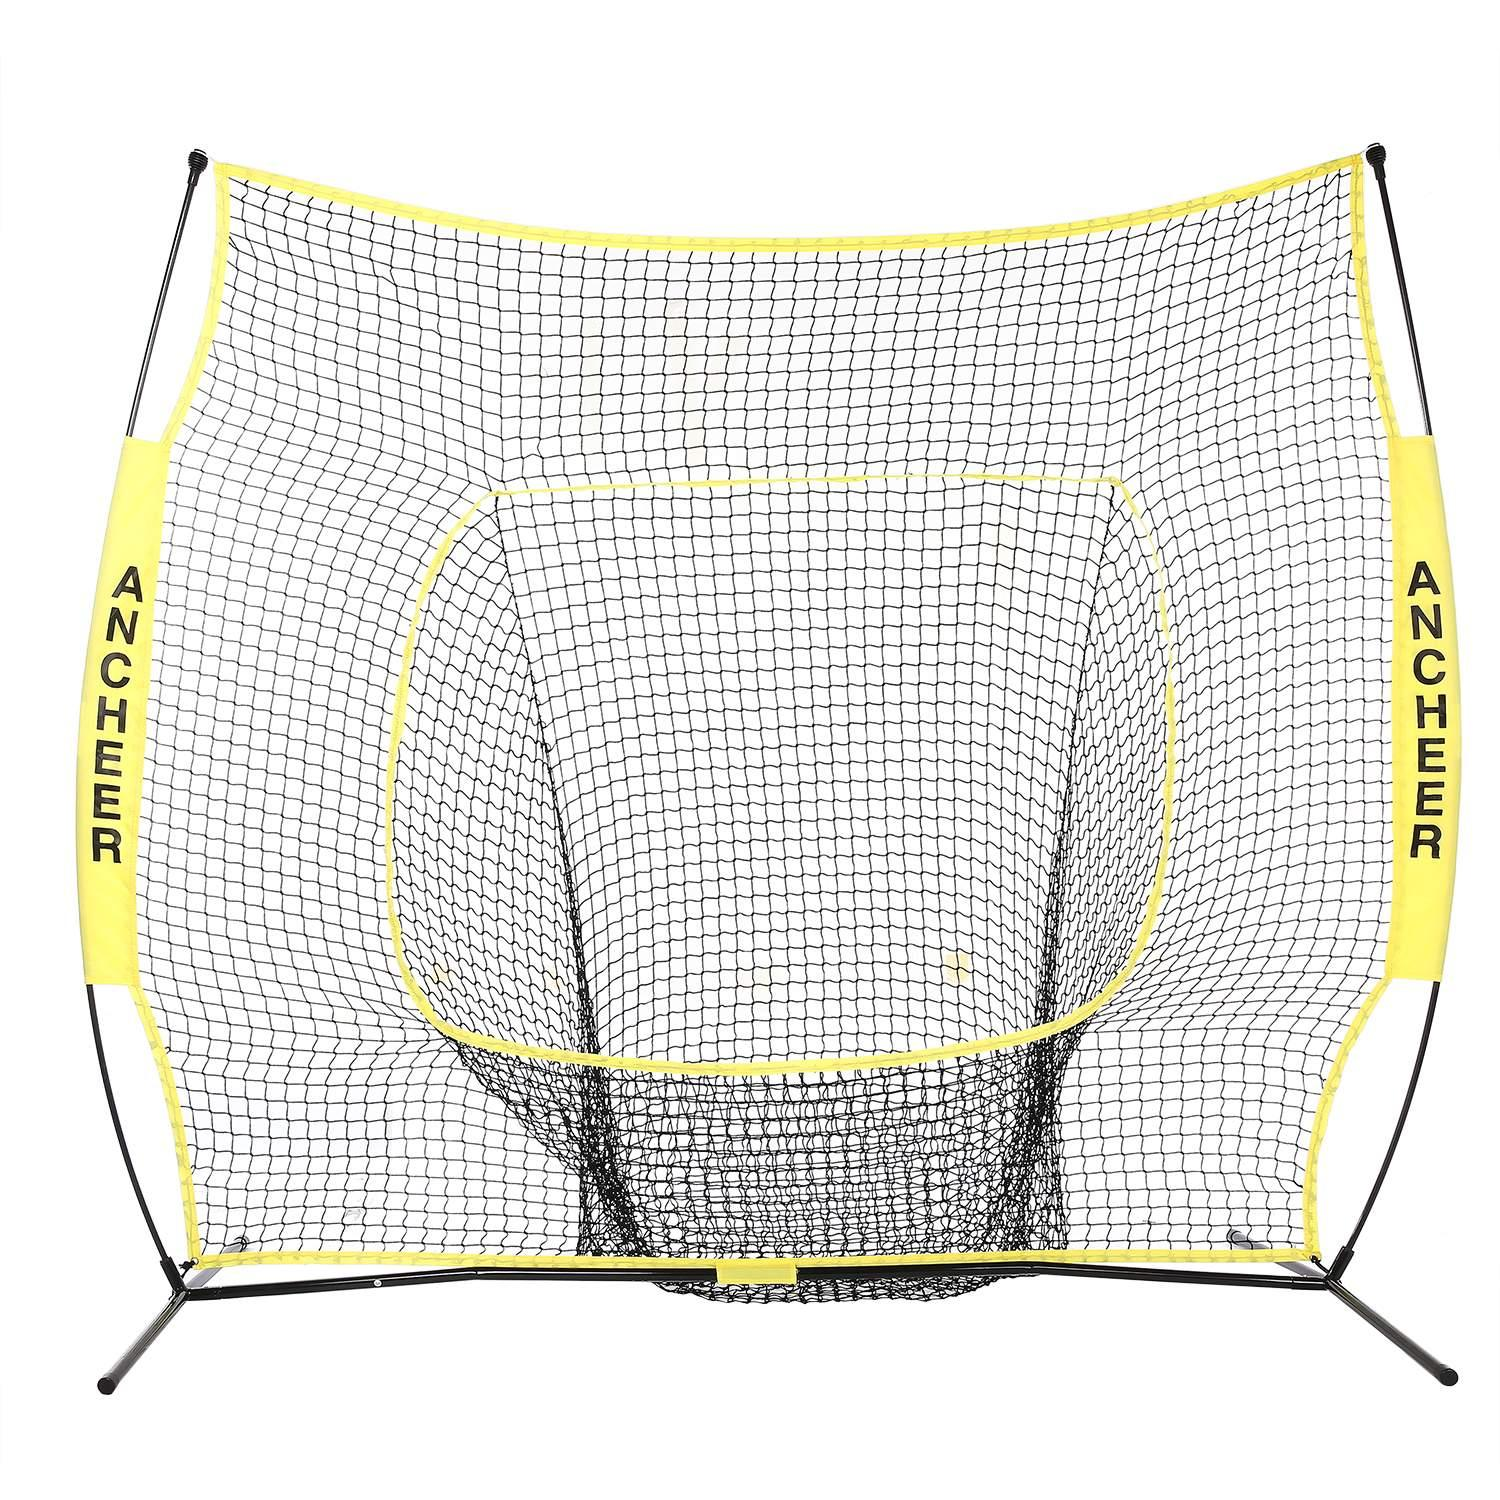 Holiday Special Elecmall 7 x 7ft Baseball Softball Practice Net with Bow Frame Elec by